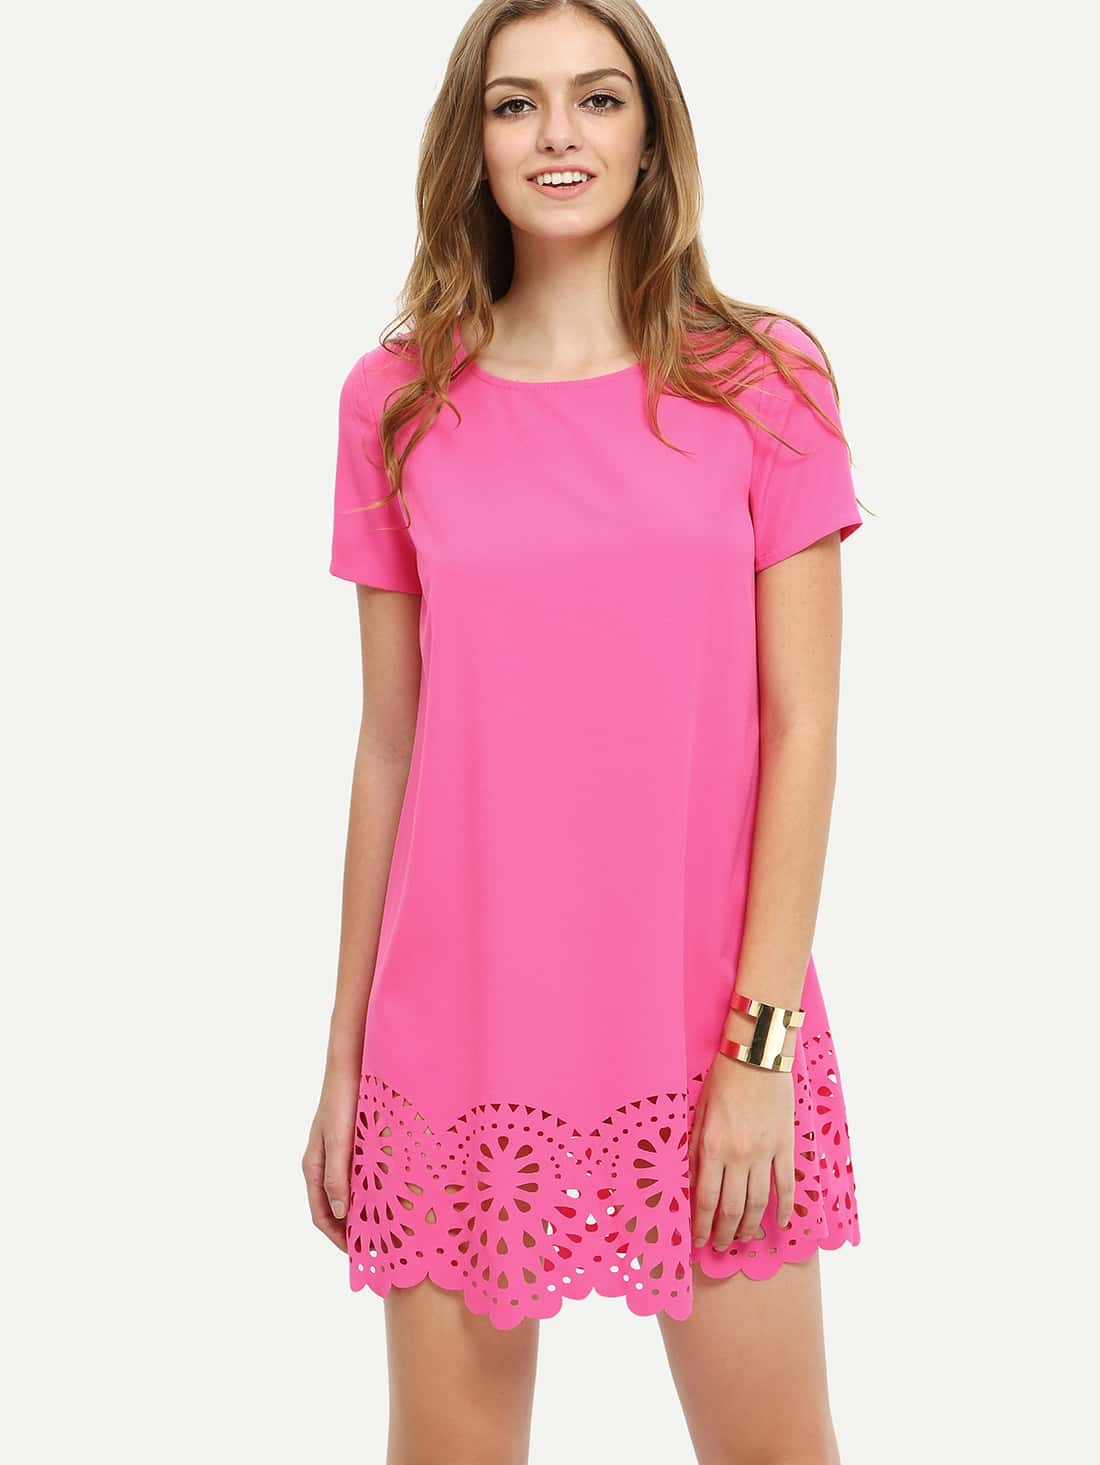 cf3142c728 Hot Pink Short Sleeve Hollow Shift Dress EmmaCloth-Women Fast ...